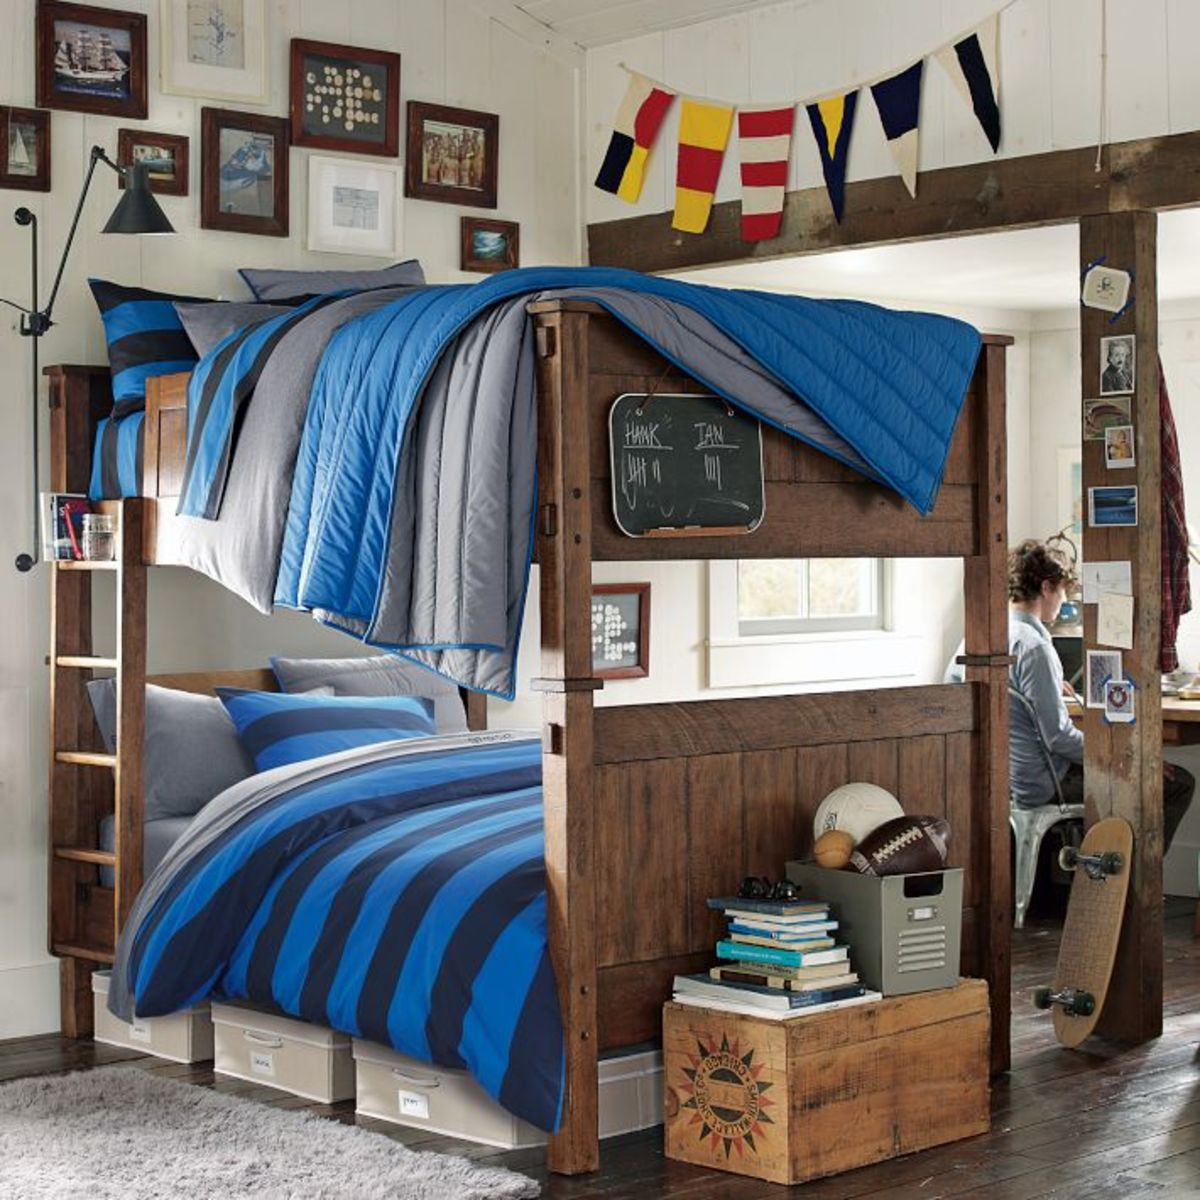 The Best Kids Beds for Shared Bedrooms for Kids  ~ 072157_Dorm Room Themes For Guys